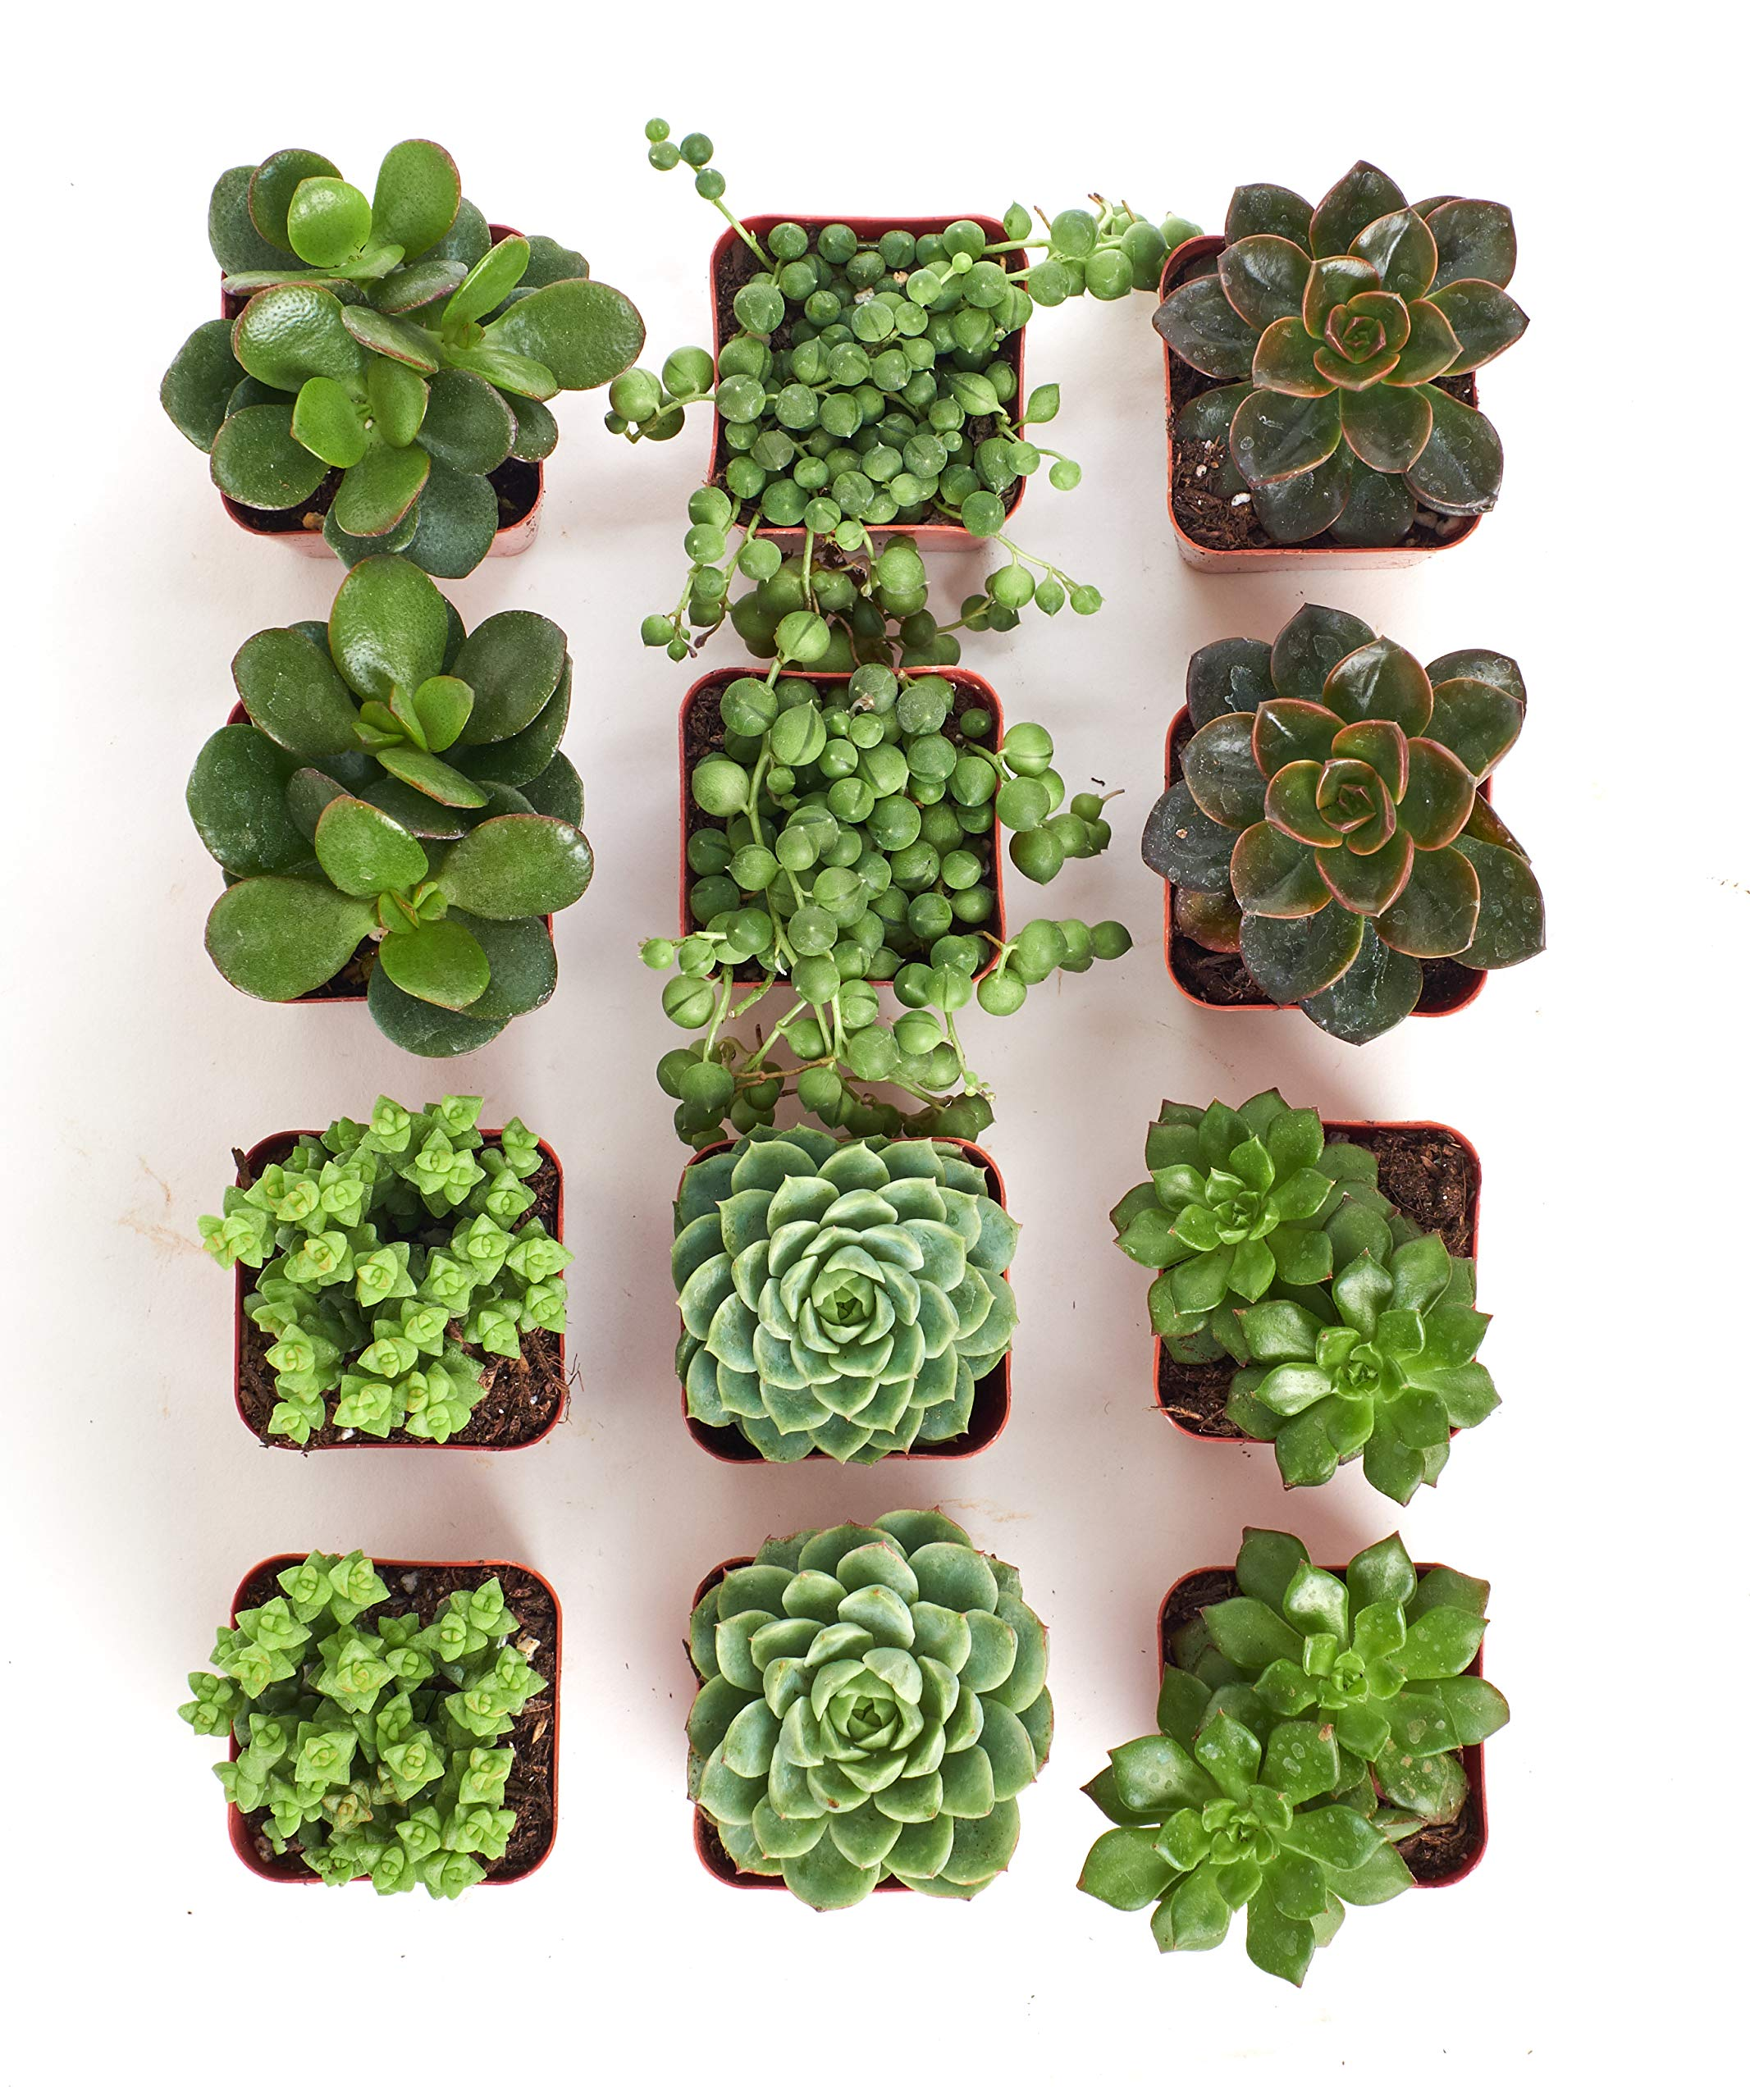 Shop Succulents | Green Live Plants, Hand Selected Variety Pack of Mini Succulents | | Collection of 12 in 2'' pots, Pack of 12 by Shop Succulents (Image #3)